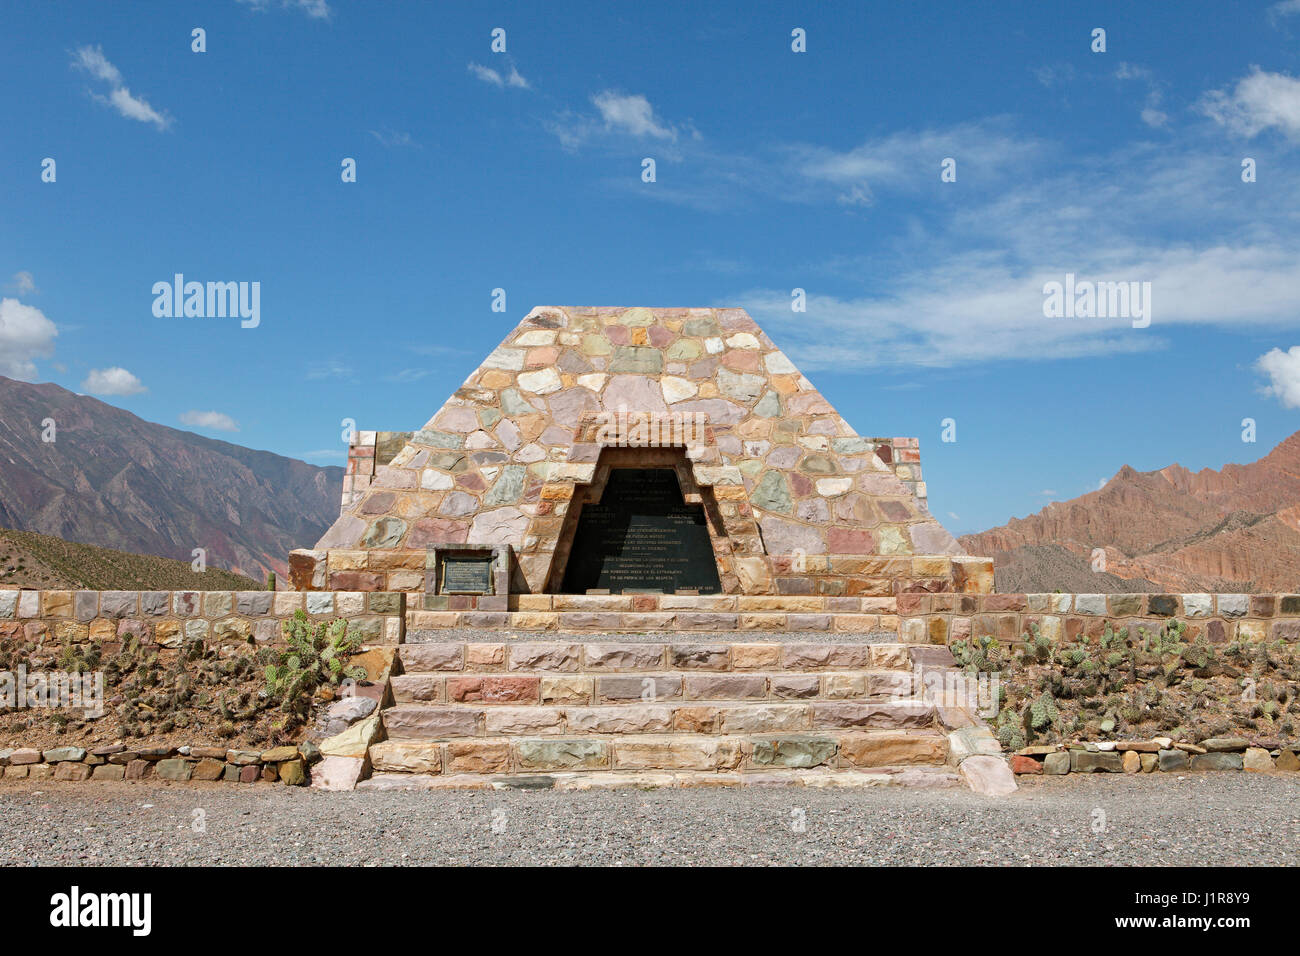 Monument to honor the discoverers Ambrosetti and Debenedetti, Pucará de Ticara, Humahuaca ravine, Jujuy Province, - Stock Image